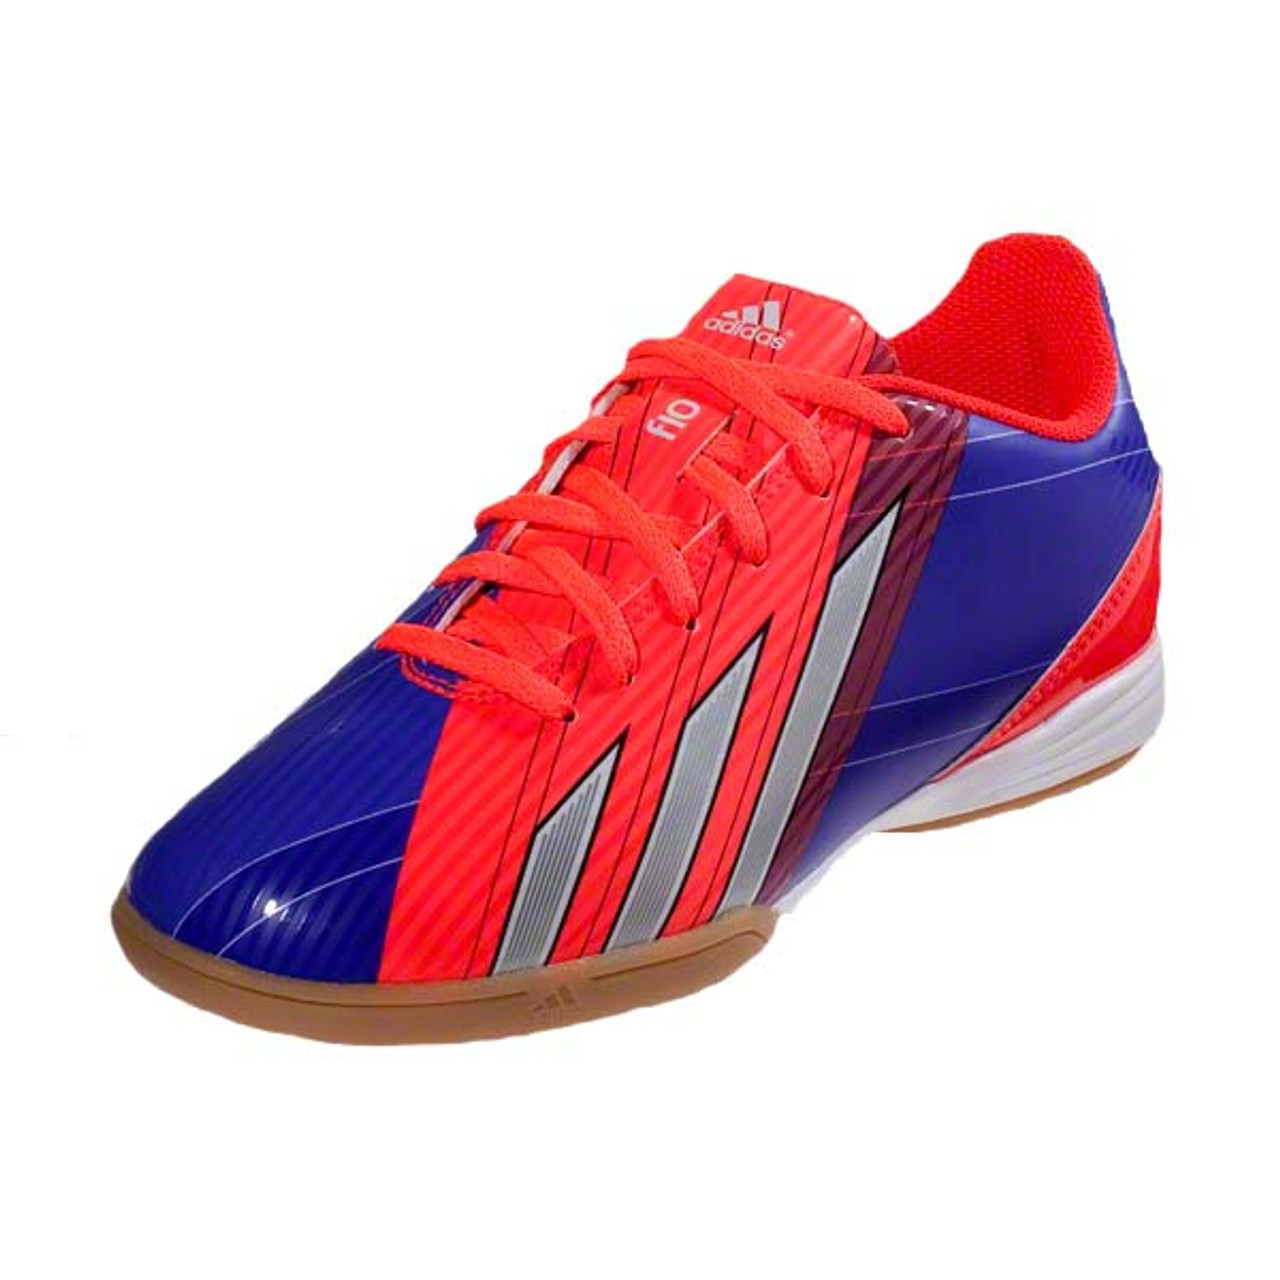 adidas f10 bianche e rosse